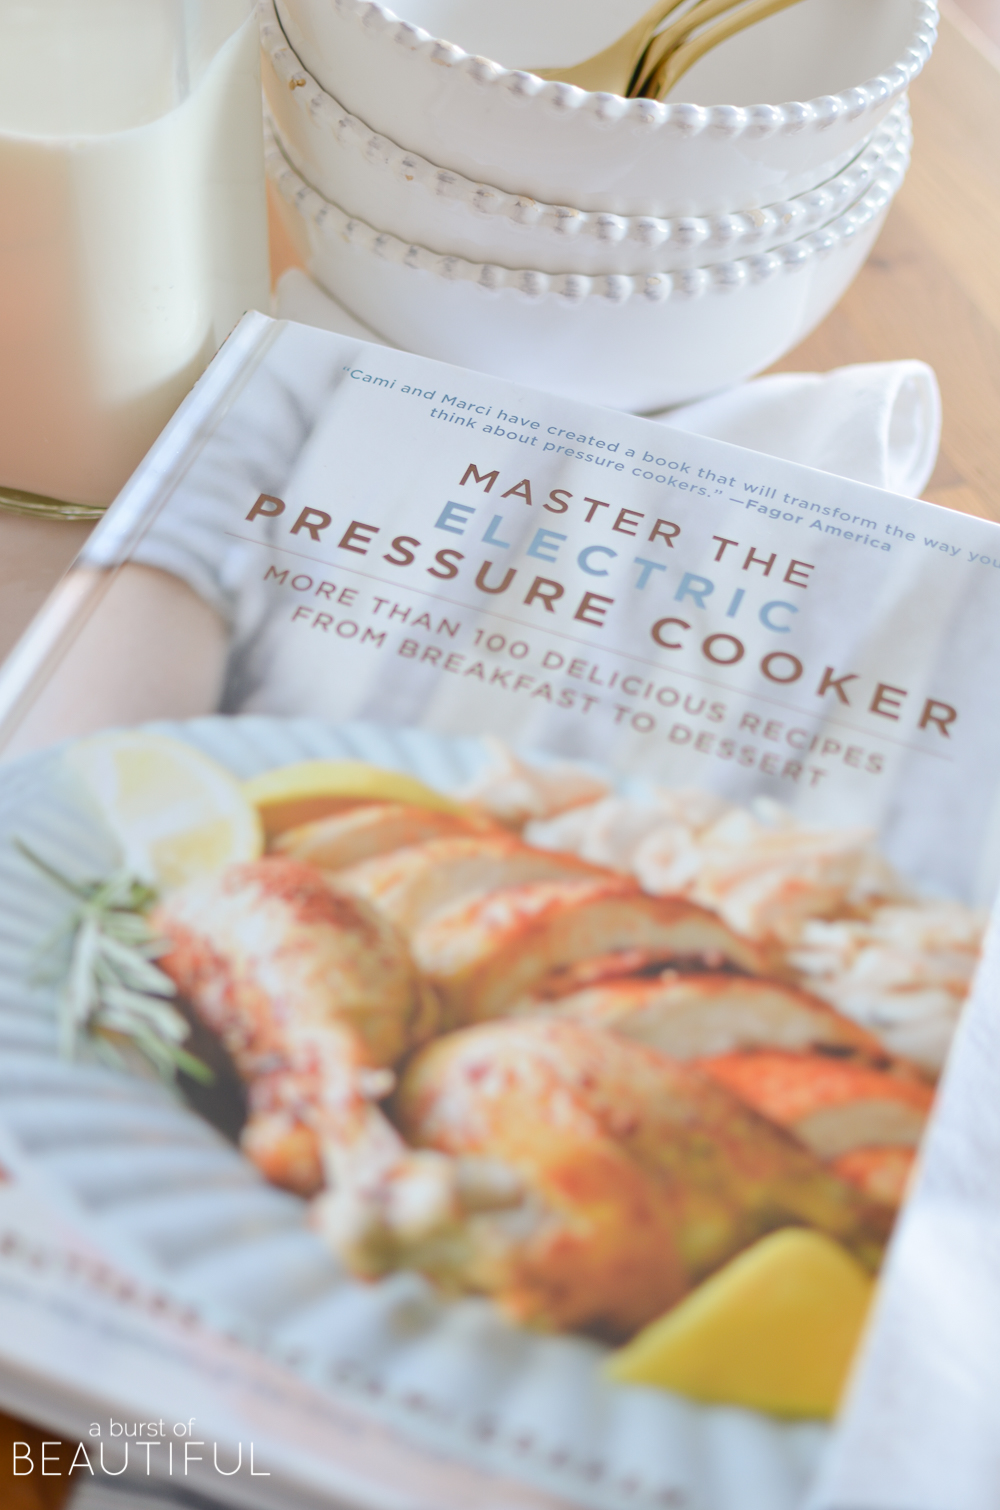 Make quick and simple family dinners with recipes from Master the Electric Pressure Cooker cookbook